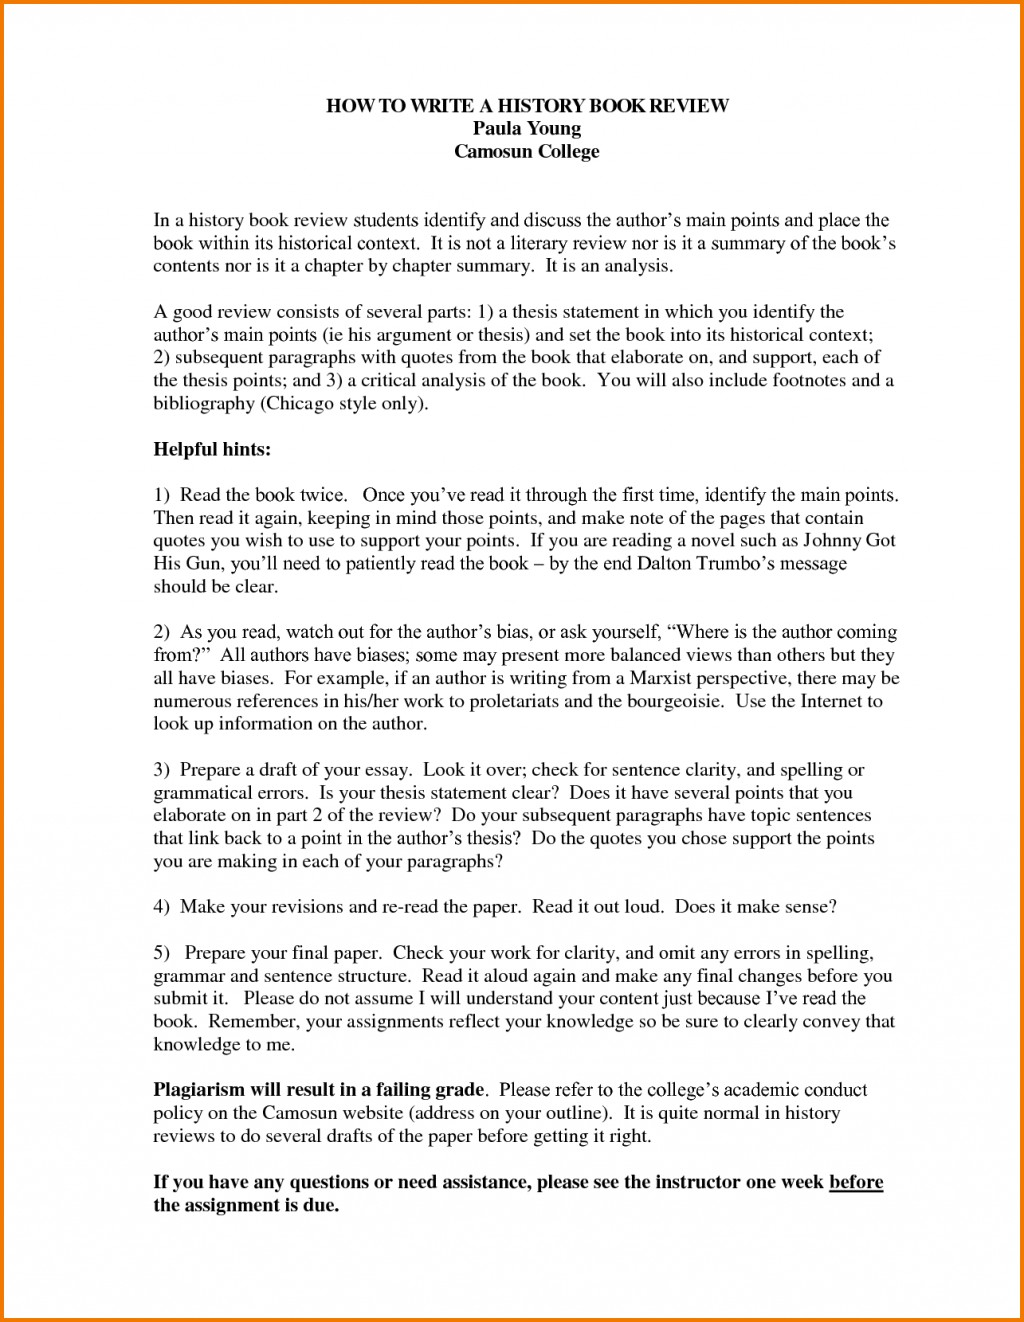 014 How To Write Book Review Essay Example Unusual A Pdf Paper Thesis Large